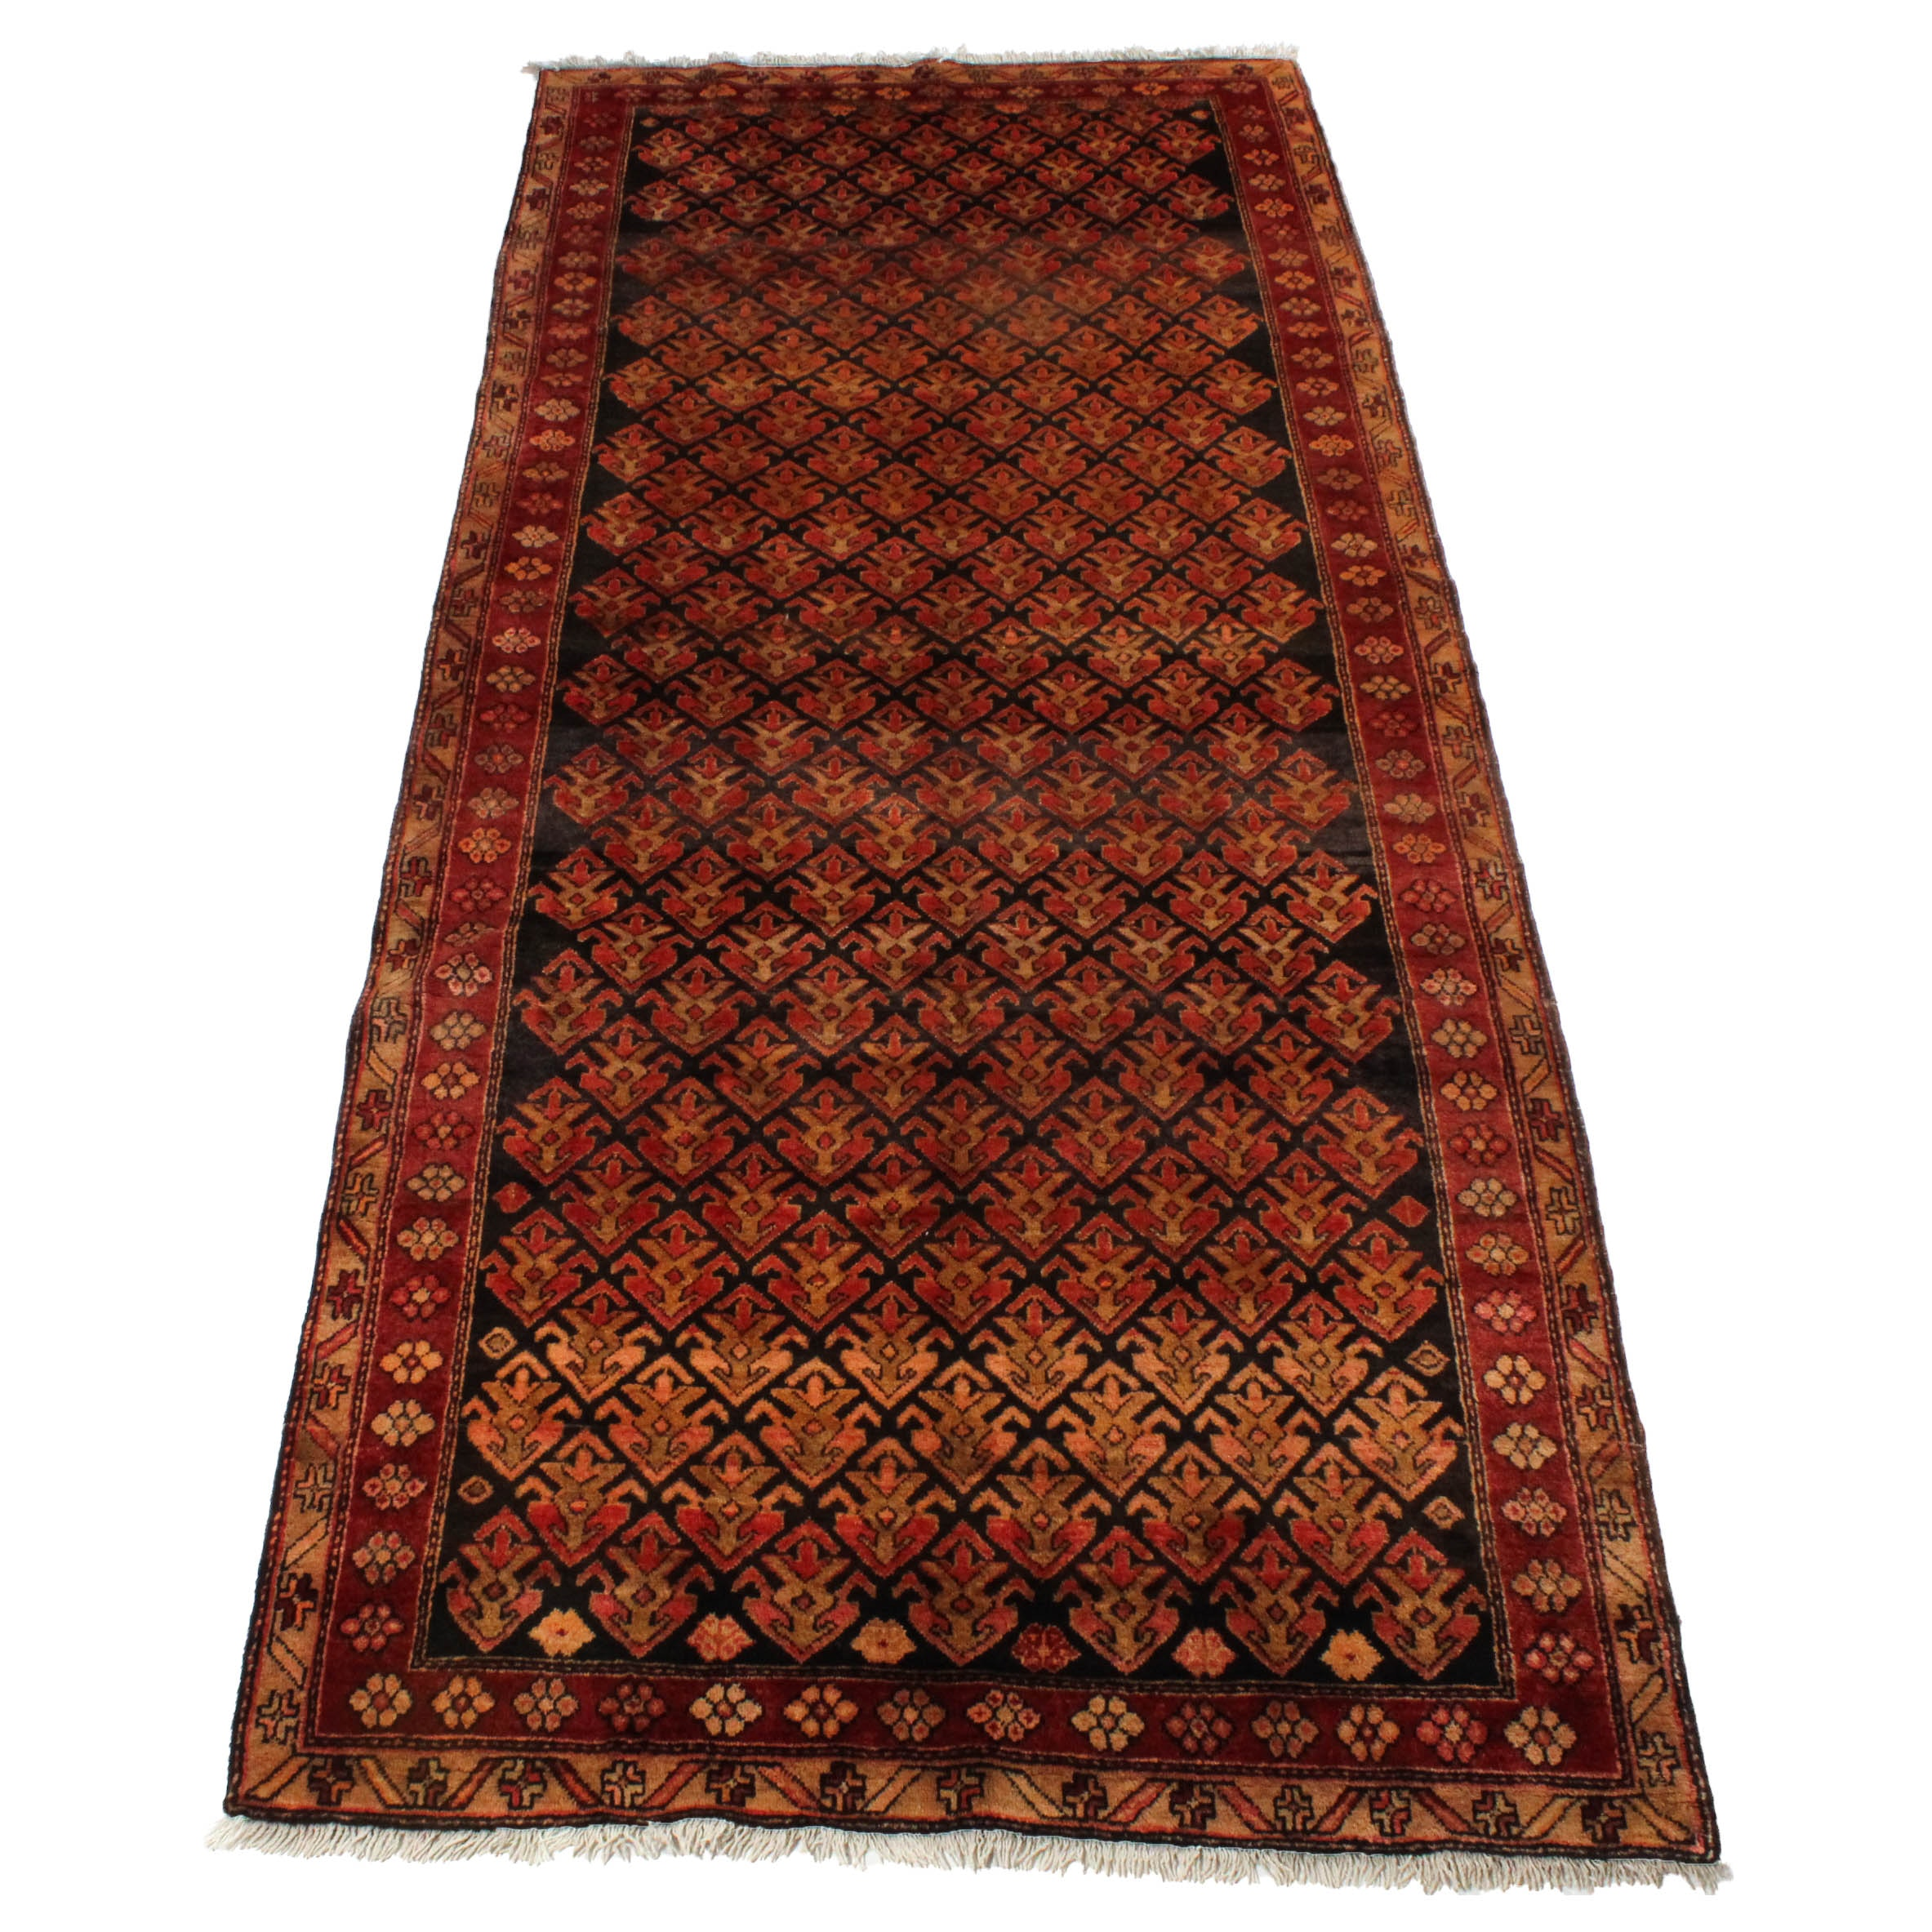 4'5 x 10'8 Semi-Antique Hand-Knotted Northwest Persian Runner